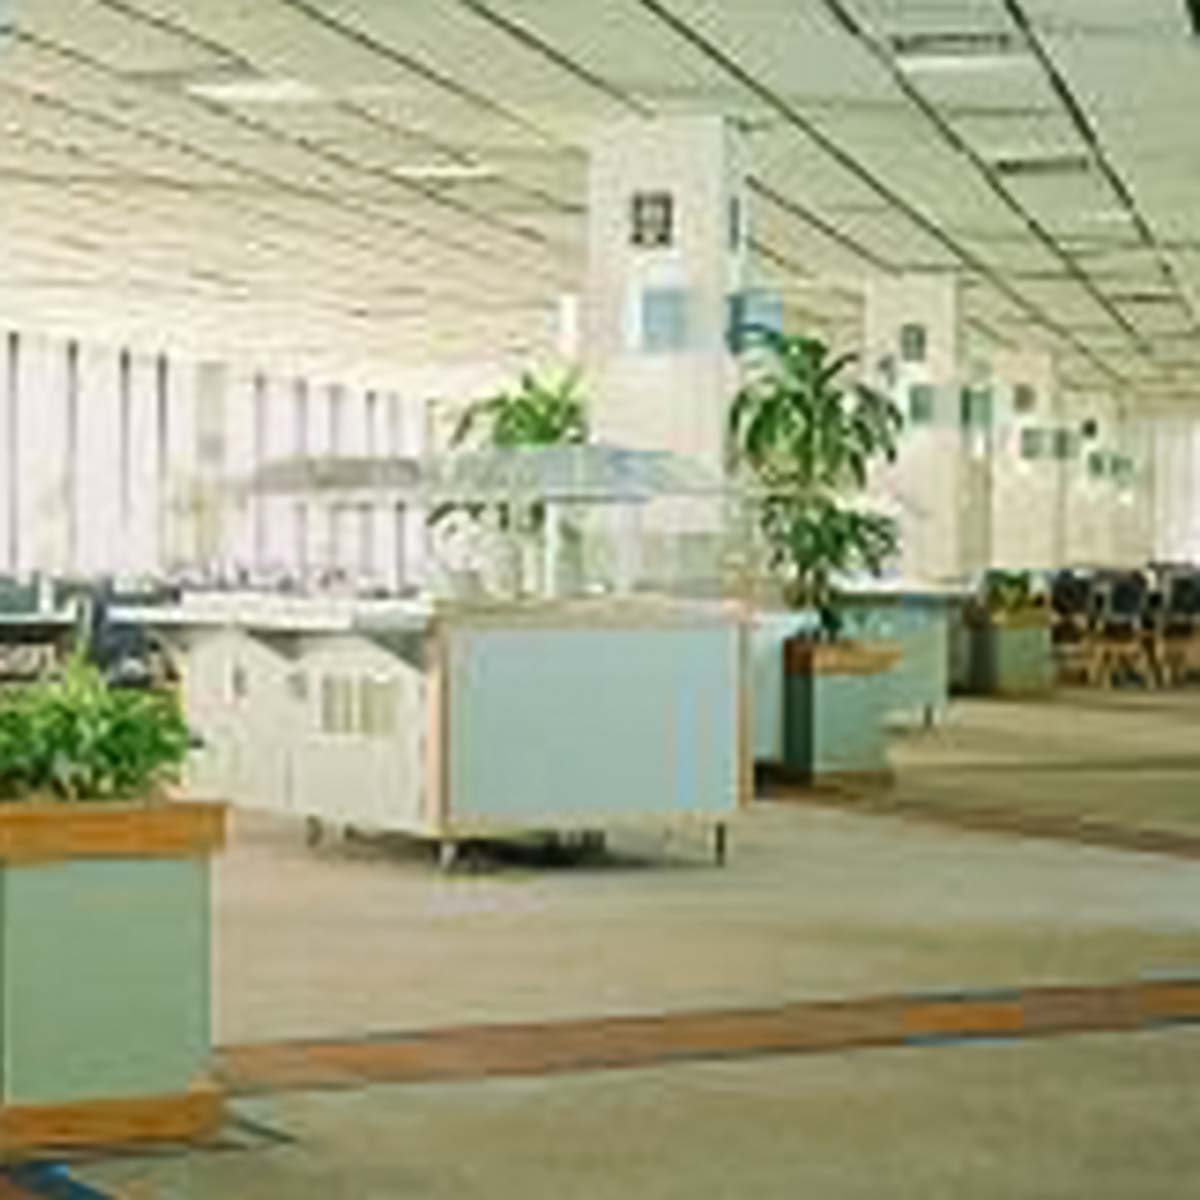 Time warners open space call center acoustical solutions open office plan call center using sonex contour ceiling tiles by pinta acoustic inc dailygadgetfo Image collections